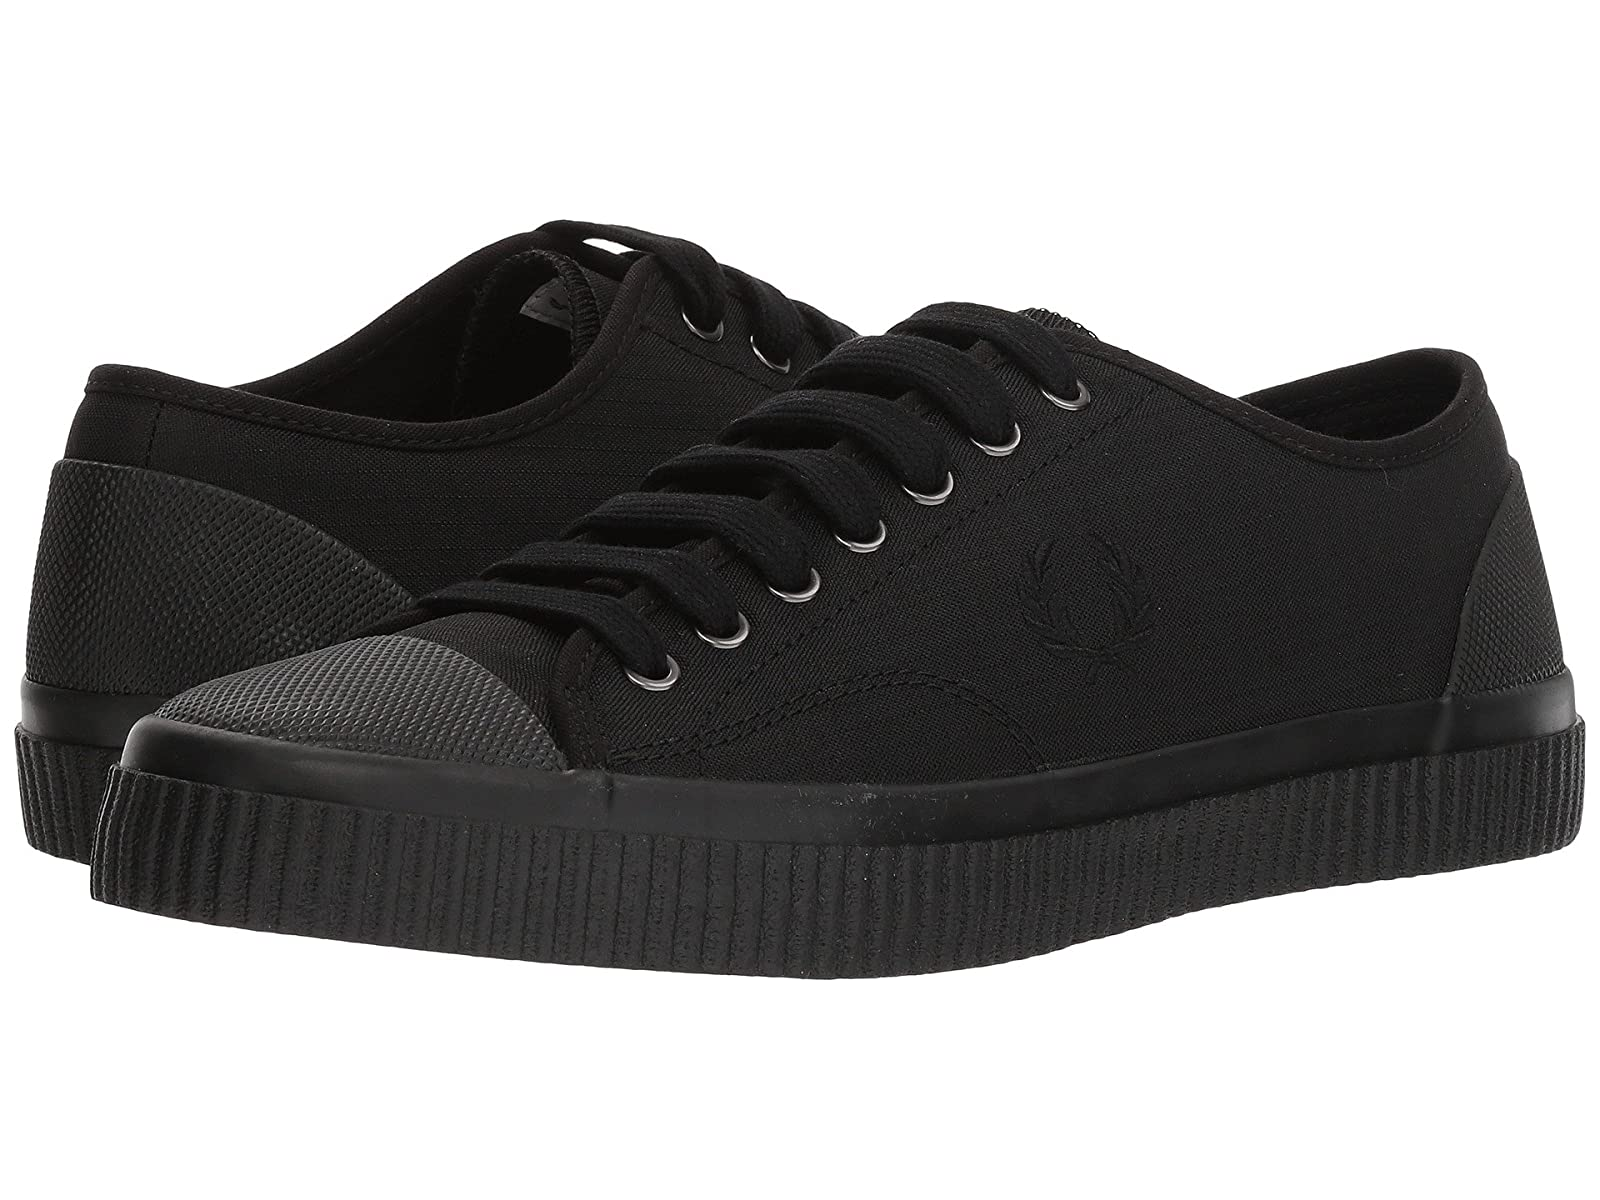 Fred Perry Hughes Cotton RipstopAtmospheric grades have affordable shoes